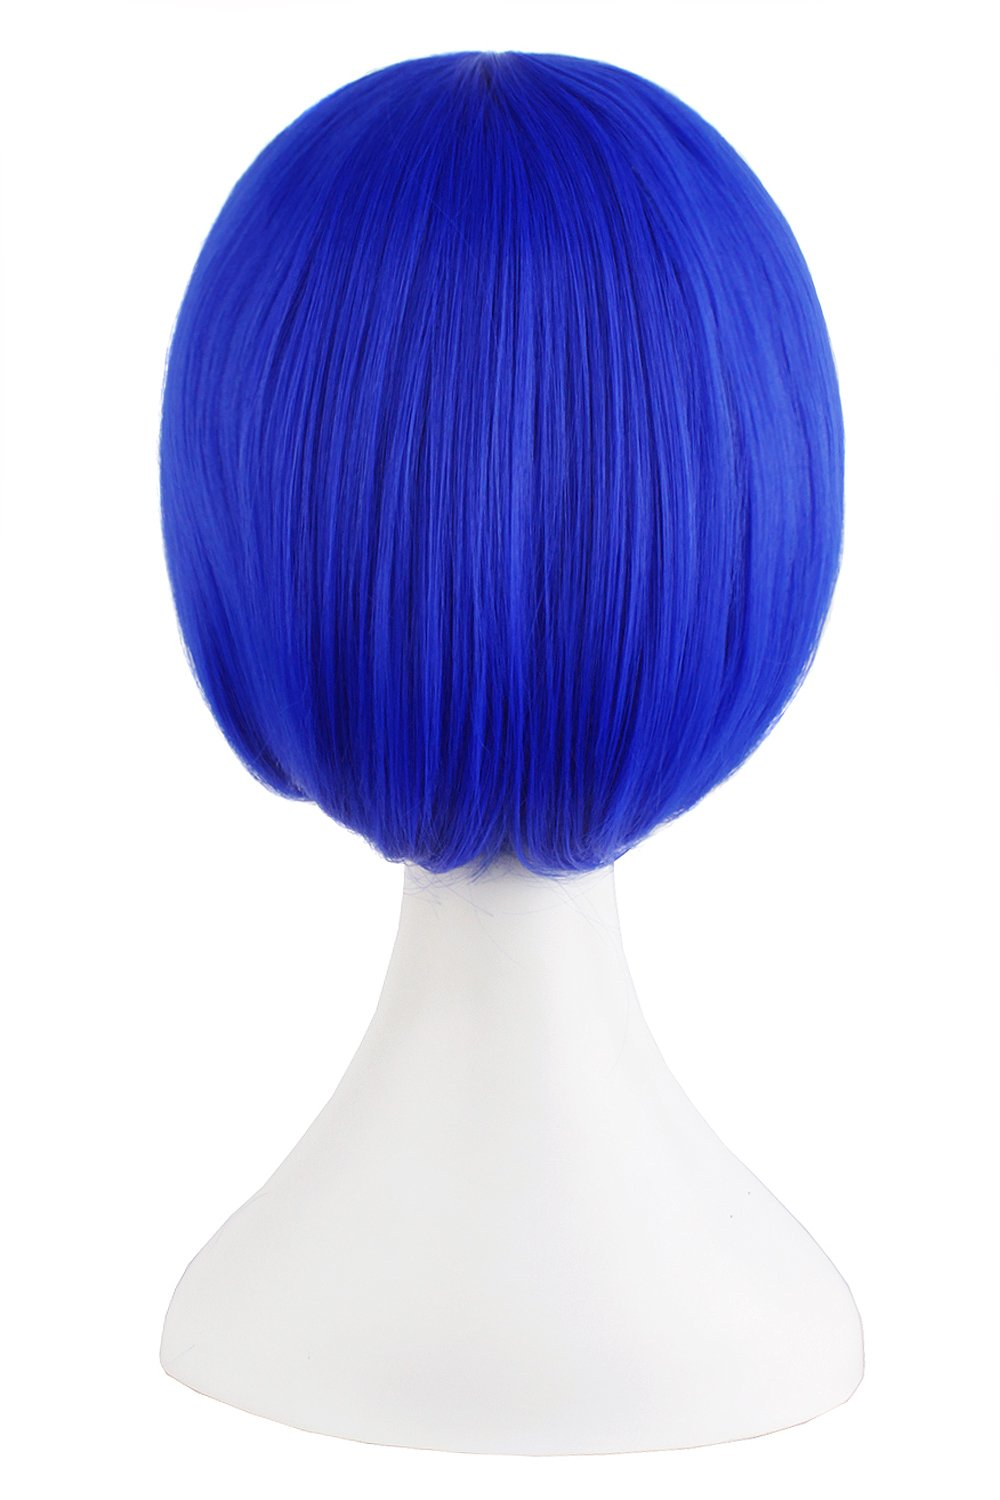 MapofBeauty Fashion Girl Natural Short Straight Wigs Diagonal Bangs Wigs-Navy Blue-Ladies by MapofBeauty (Image #2)